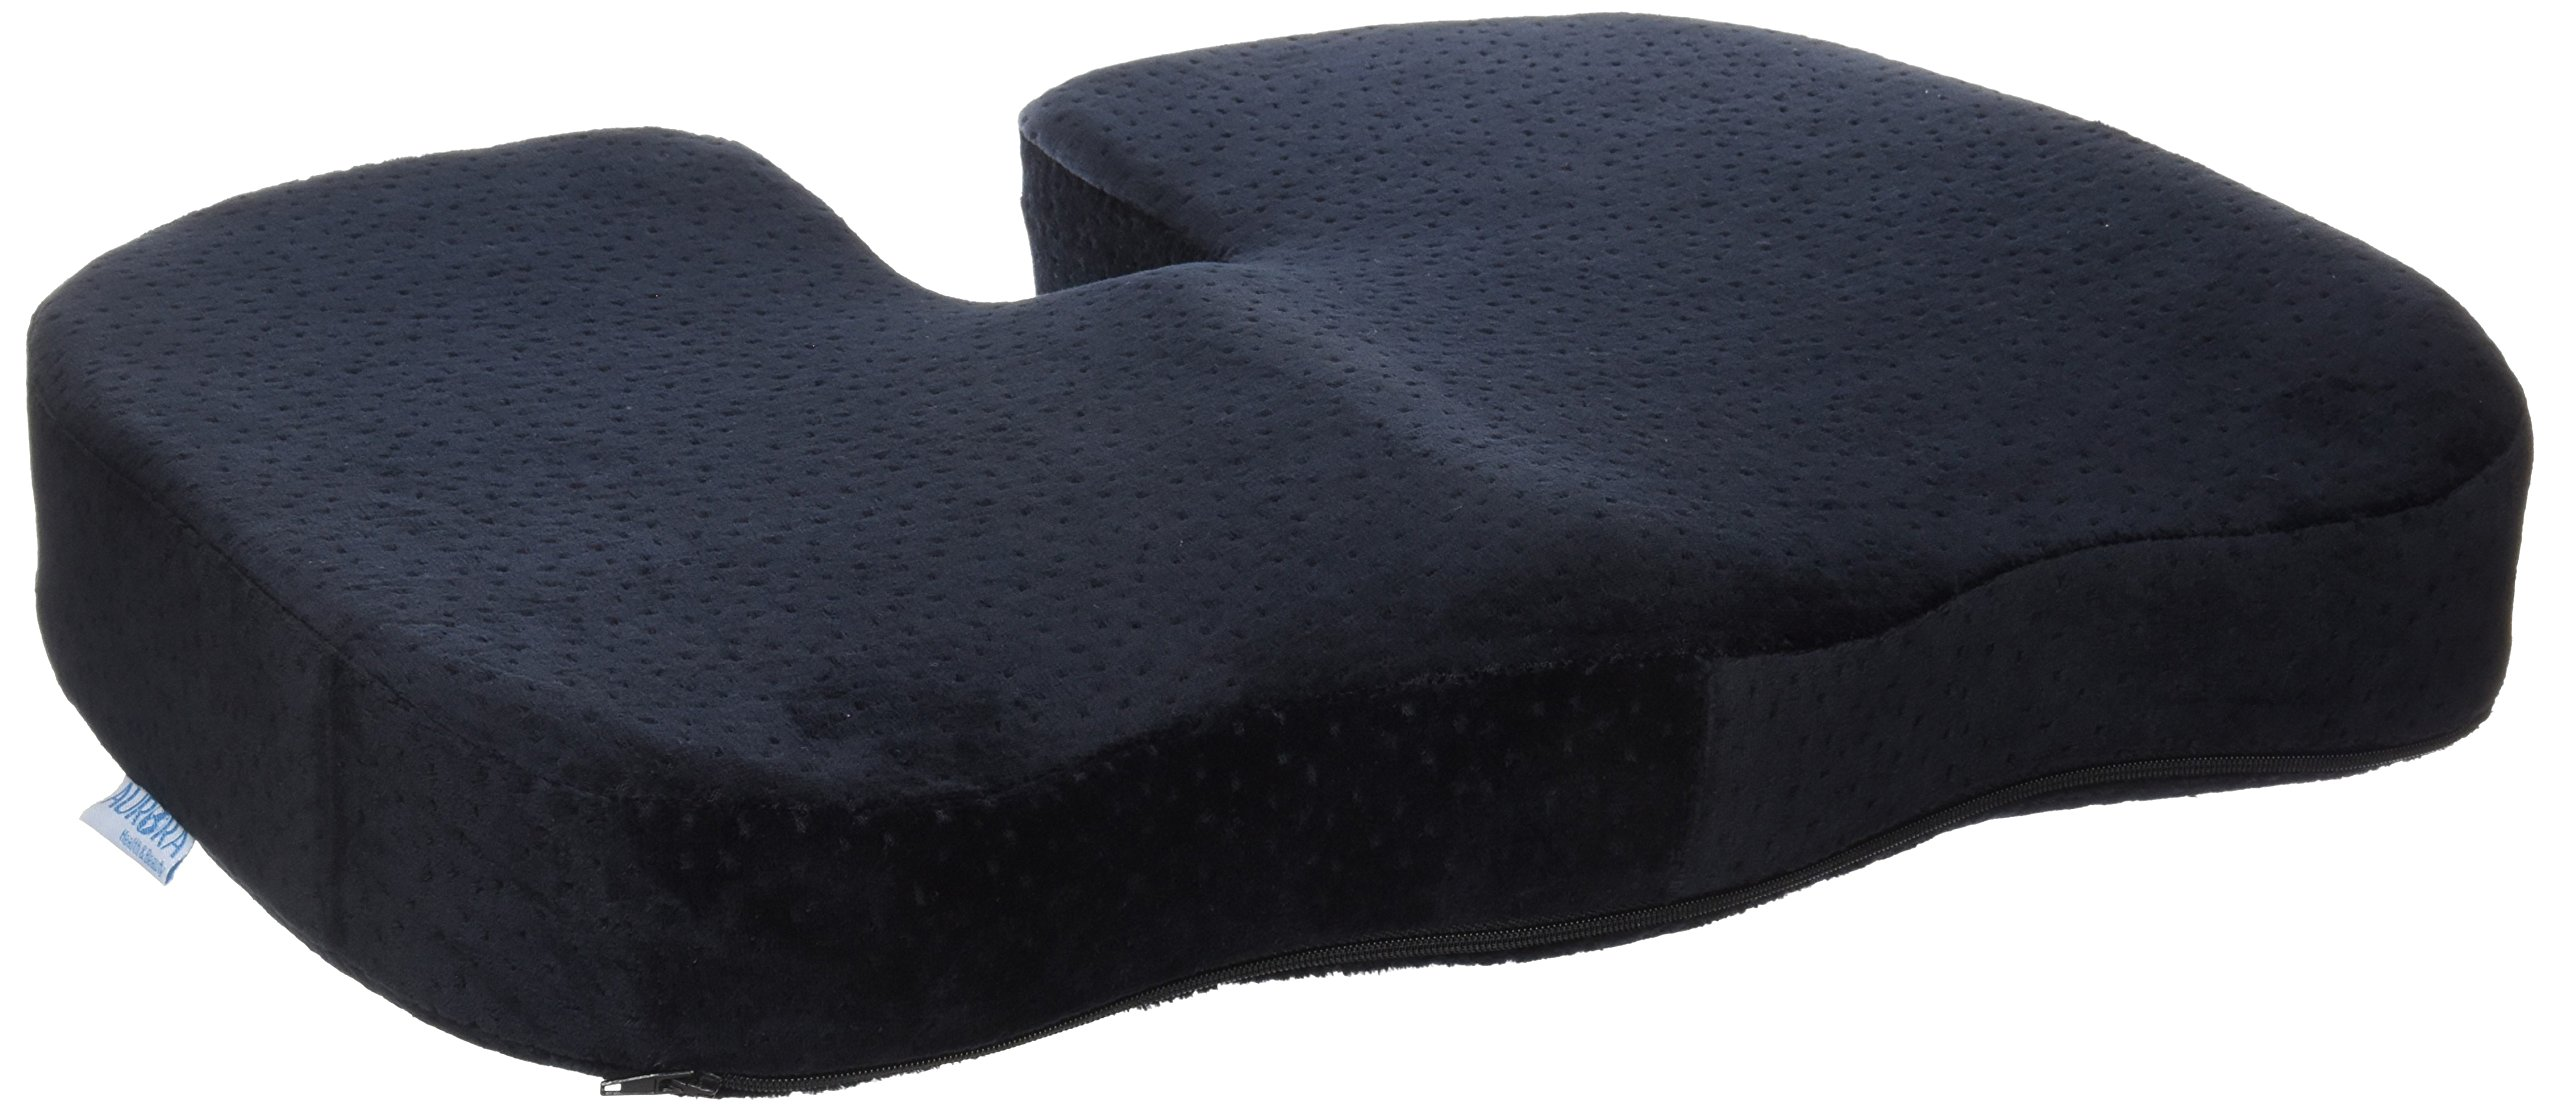 Aurora Health & Beauty Black Memory Foam Coccyx Cushion Orthopedically Designed for Back Tailbone & Sciatica Pain Relief